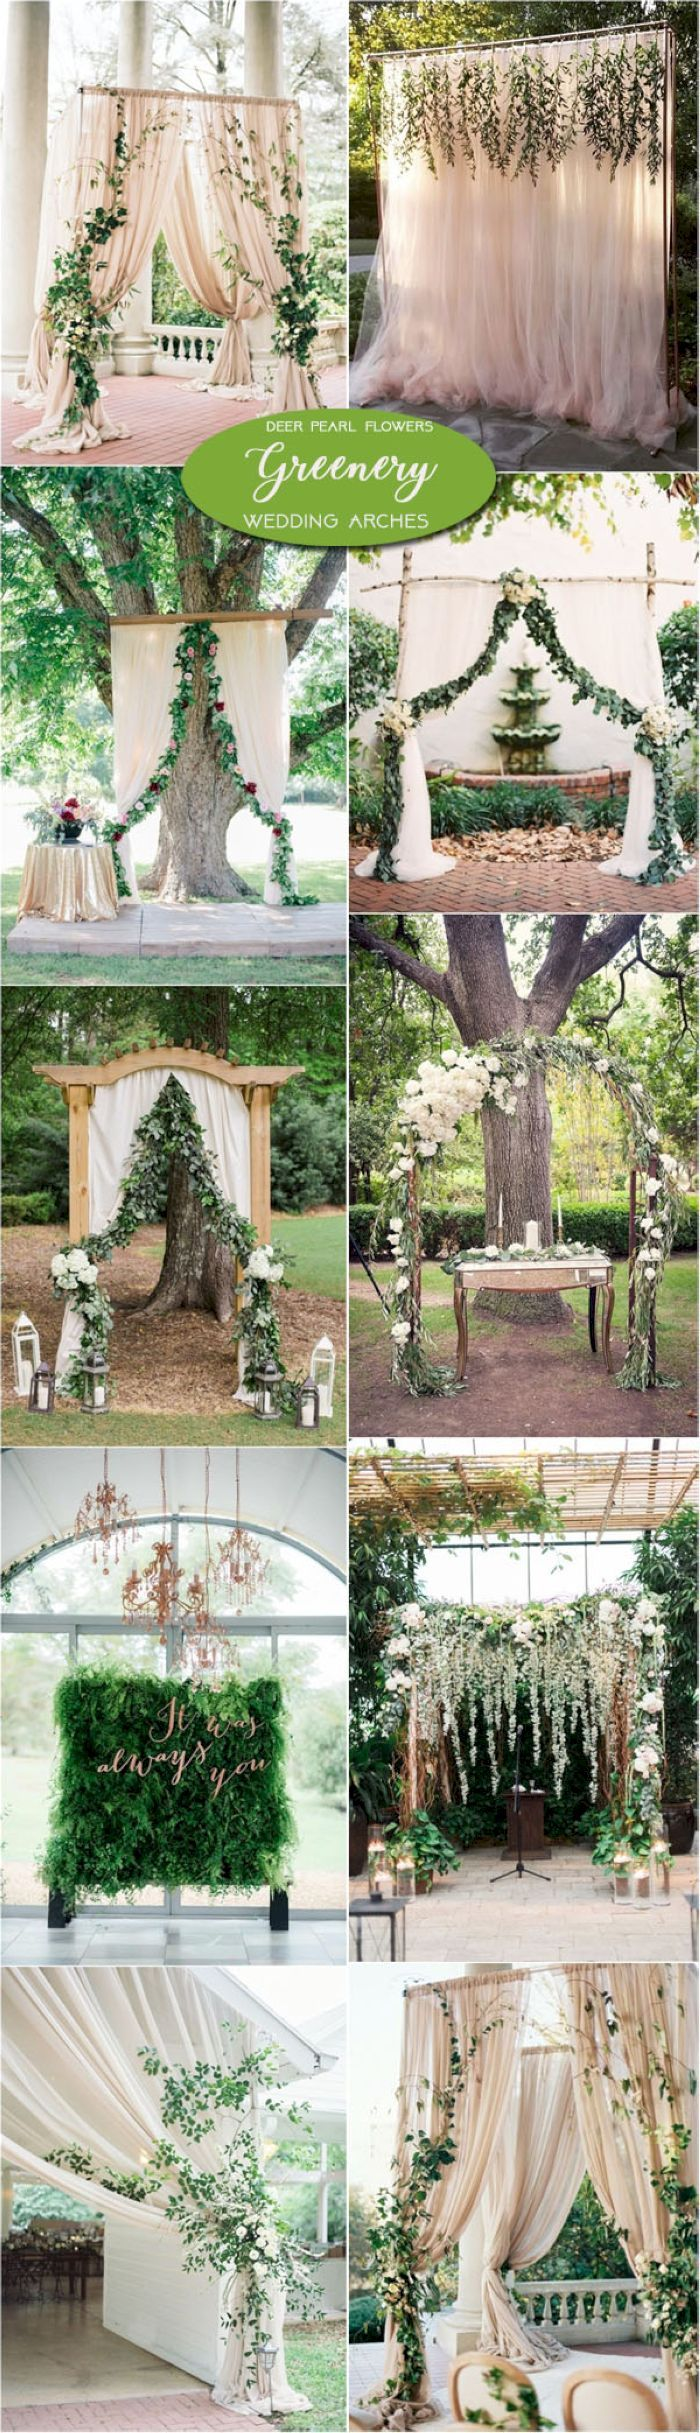 71 Elegant Outdoor Wedding Decor Ideas on A Budget is part of Greenery wedding decor - Weddings are wonderful events  And all of couples desire a beautiful and elegant wedding decor  But do you know that […]